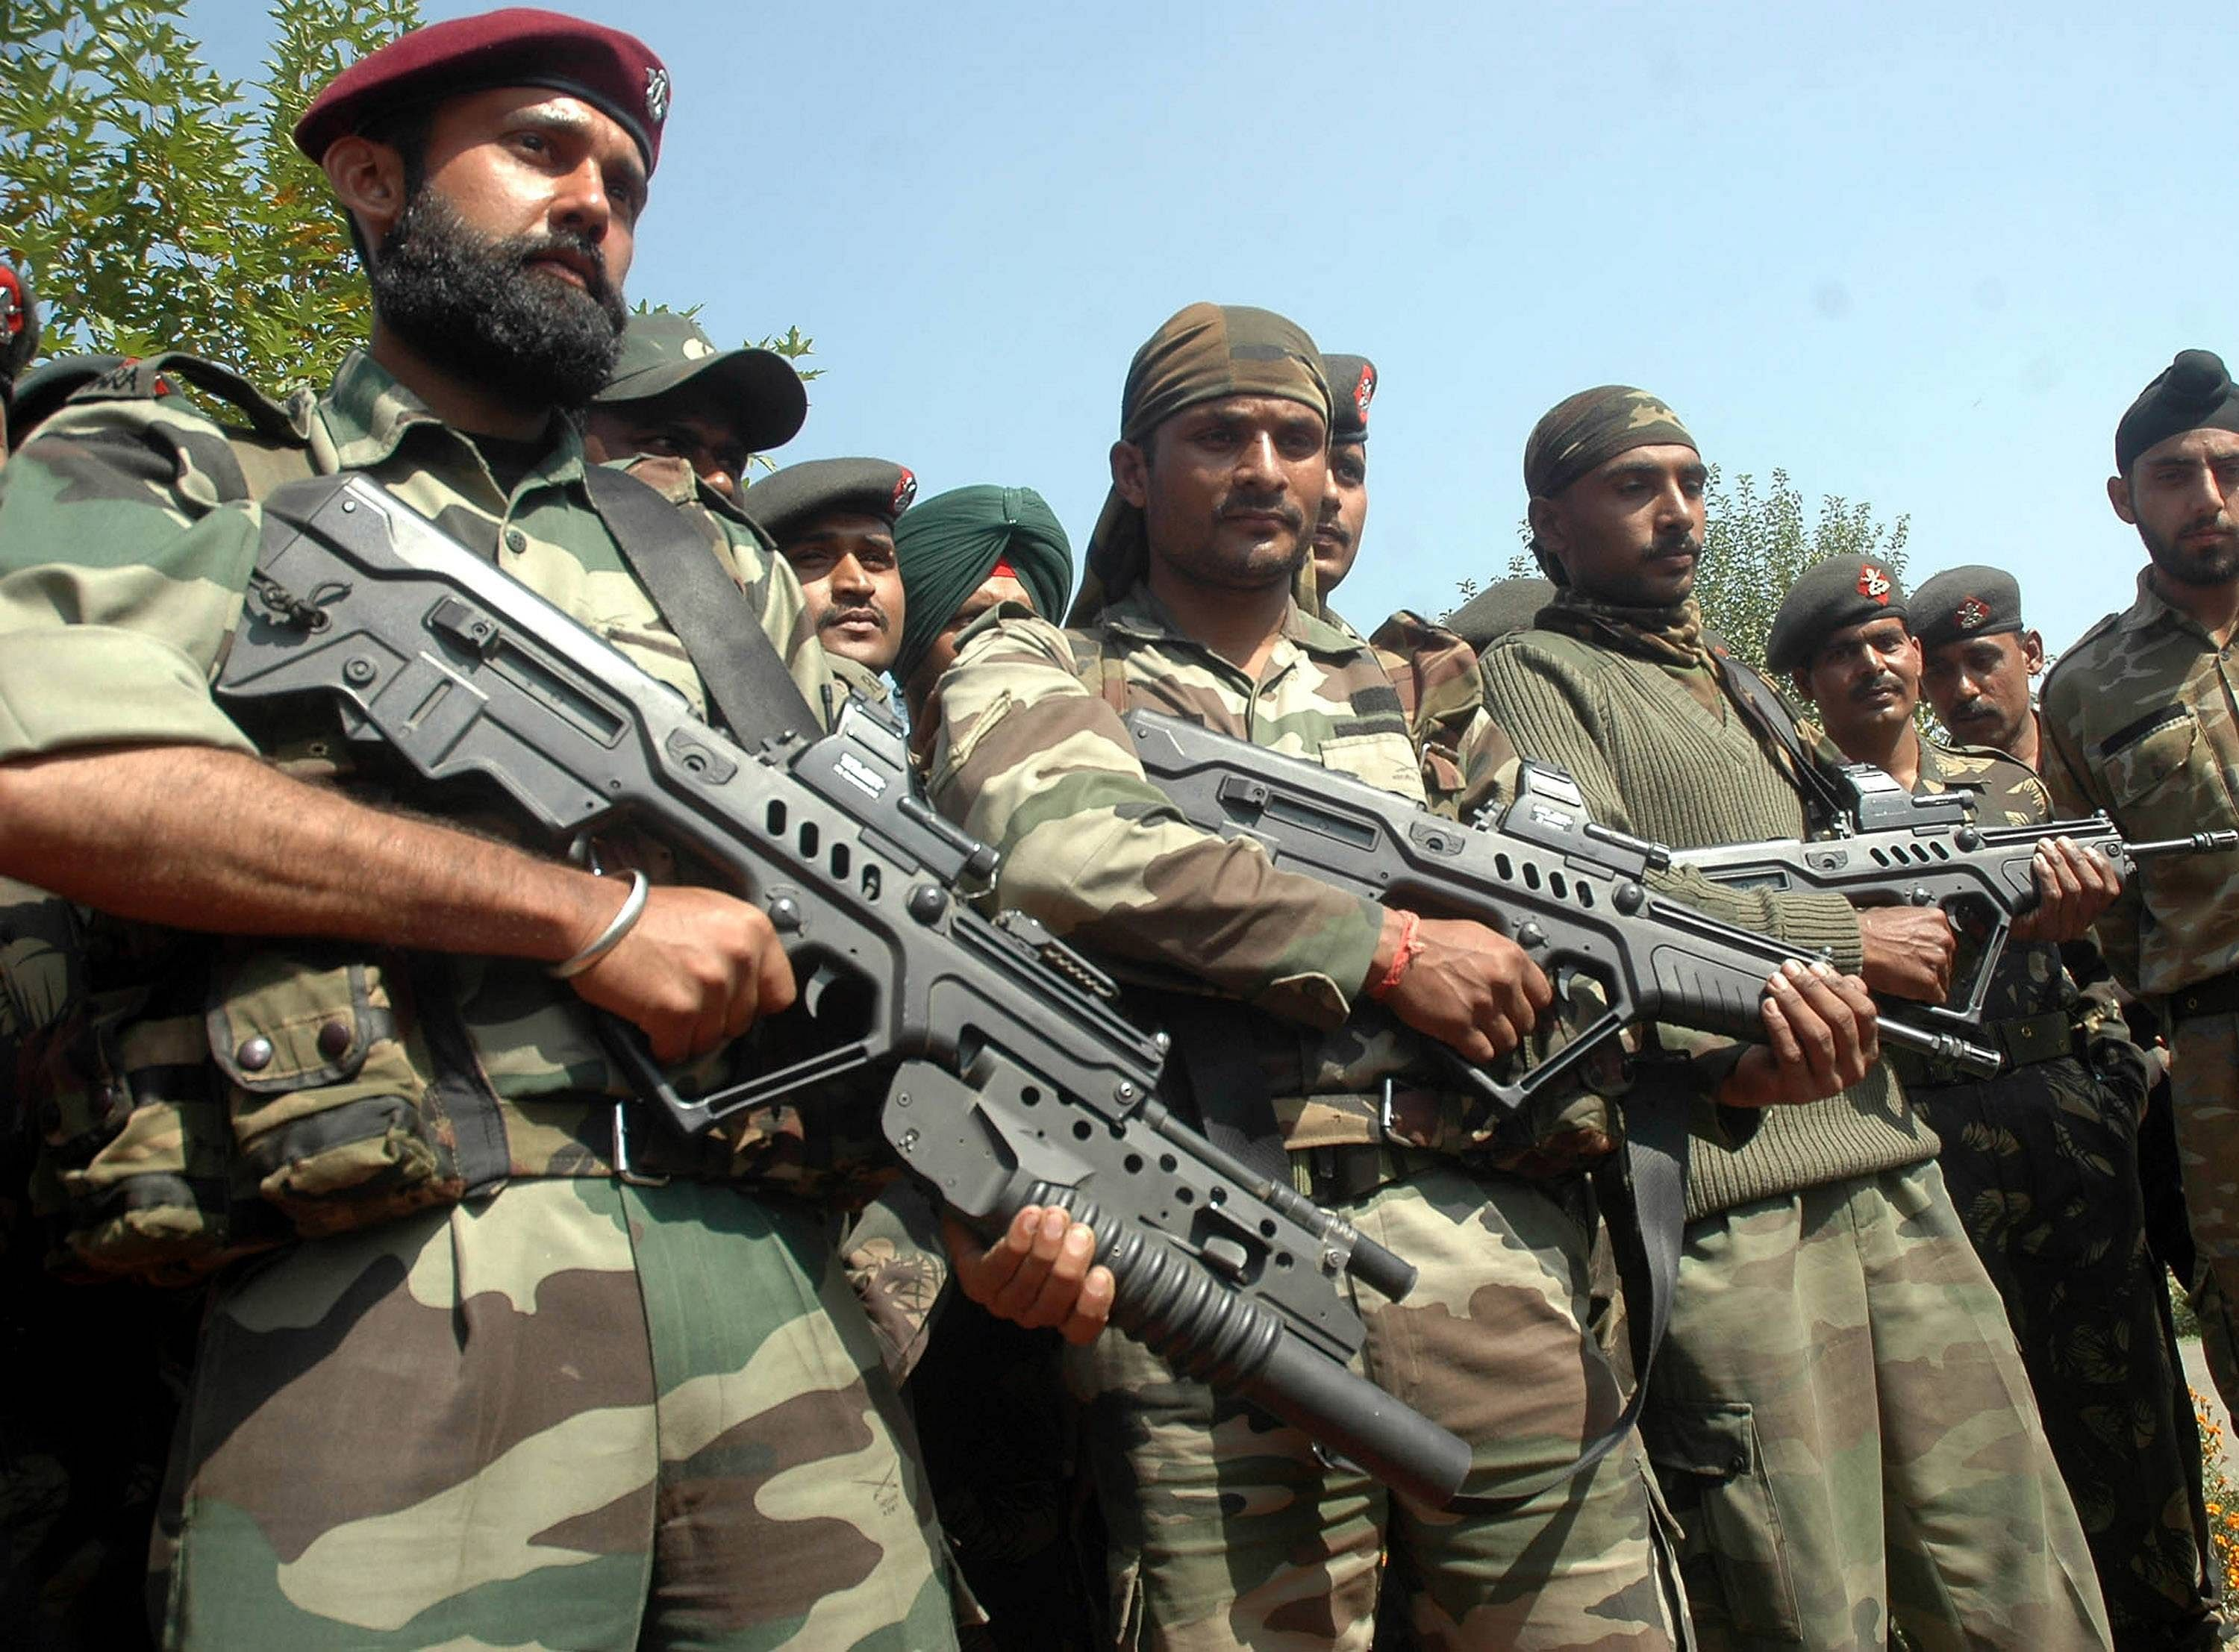 India's Para Special Forces. For representational purposes only. (Source: Wikimedia Commons)